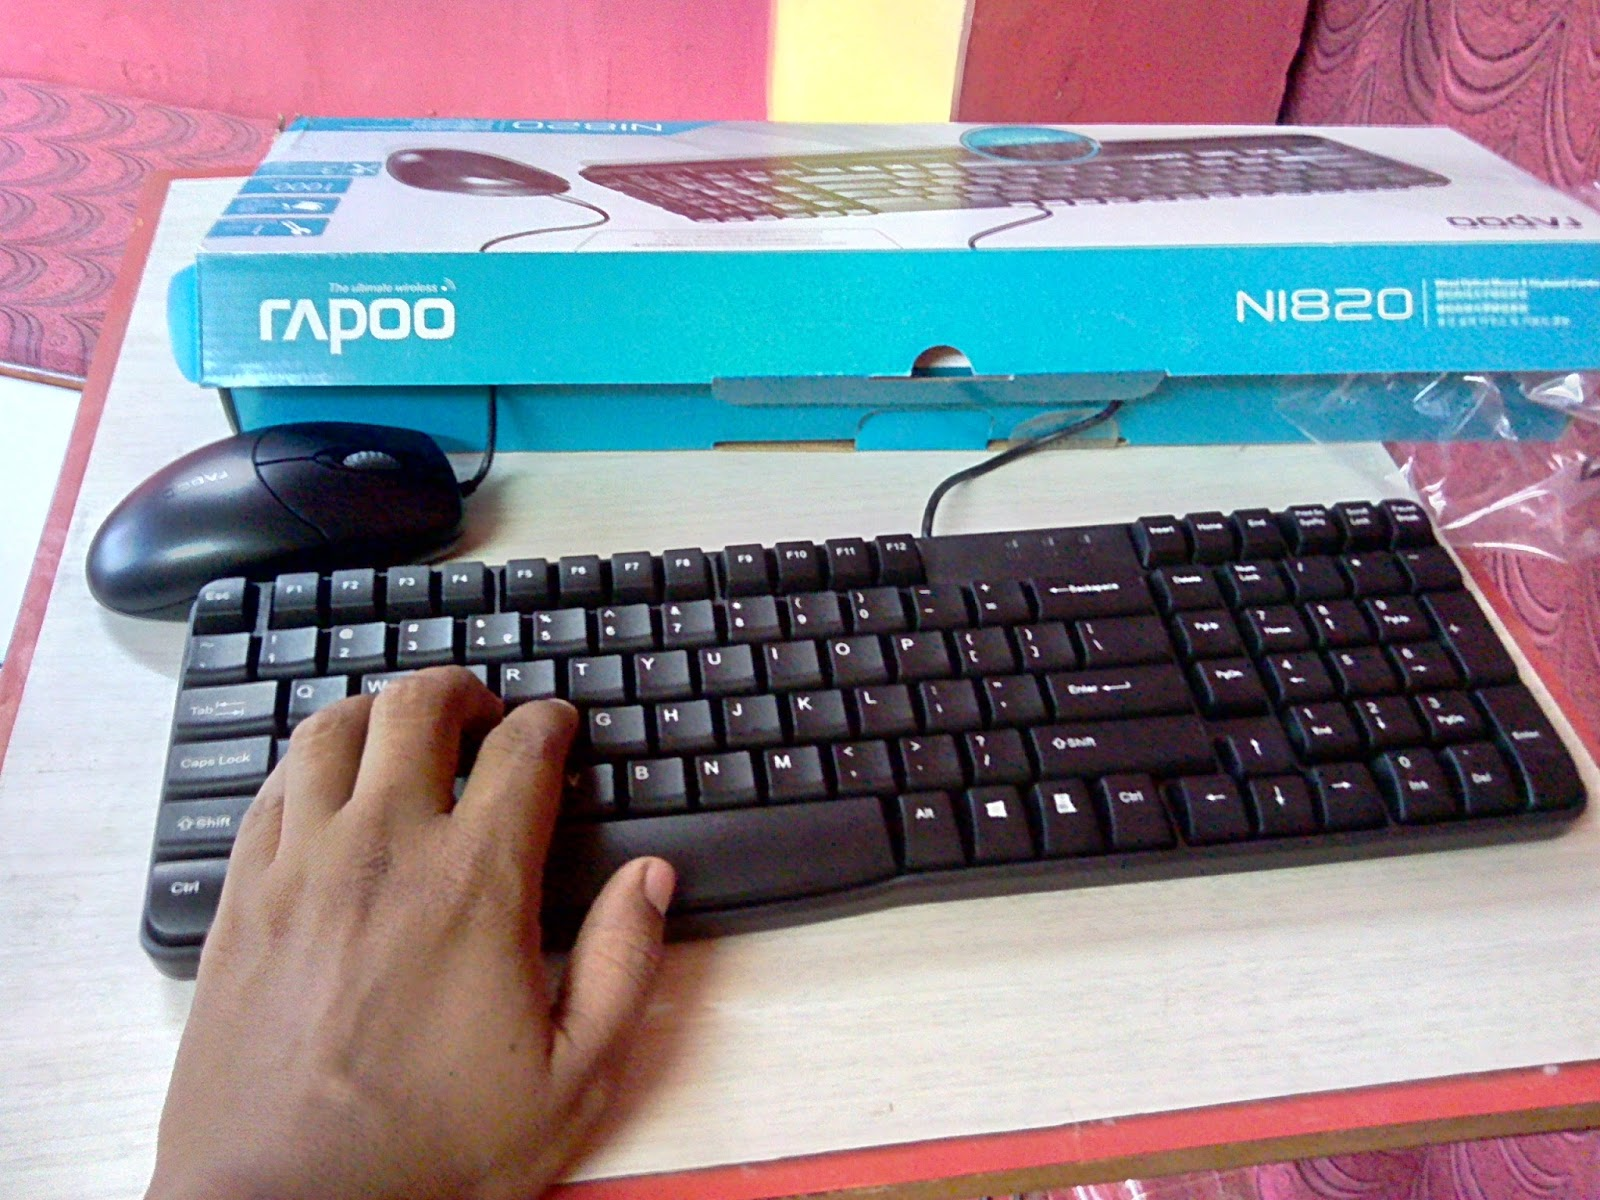 Learn New Things: Budget Rapoo Mouse & Keyboard Combo (Rapoo N1820 ...